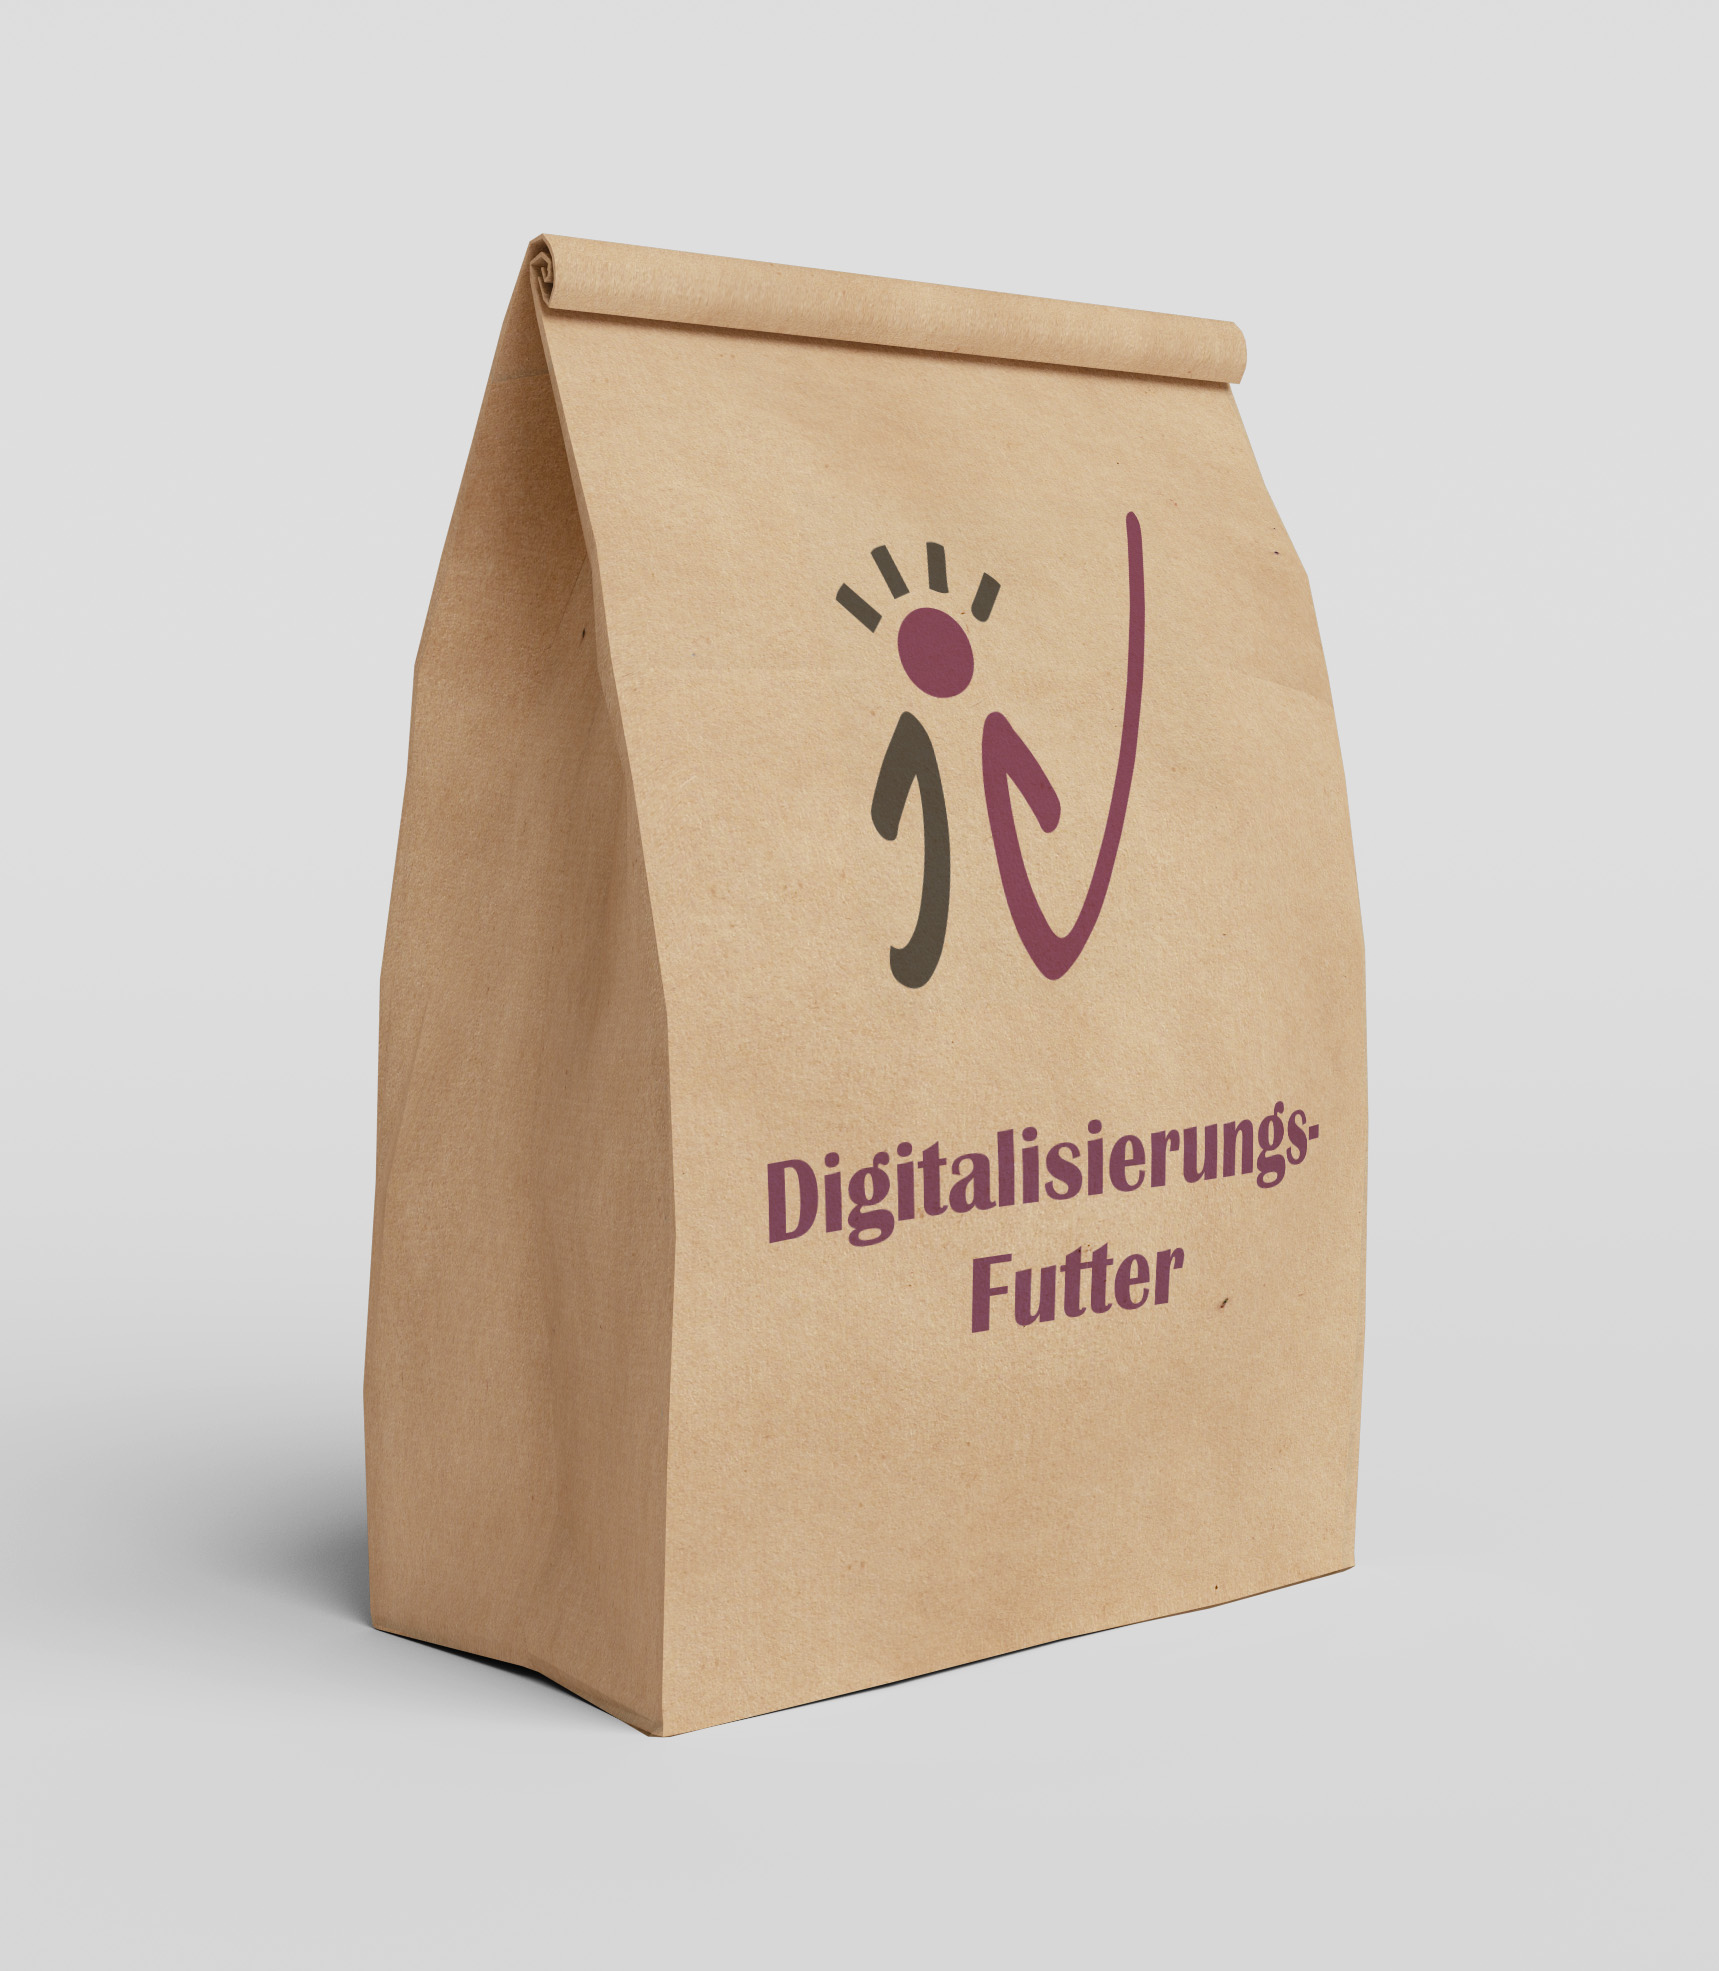 Digitalisierungs-Futter!